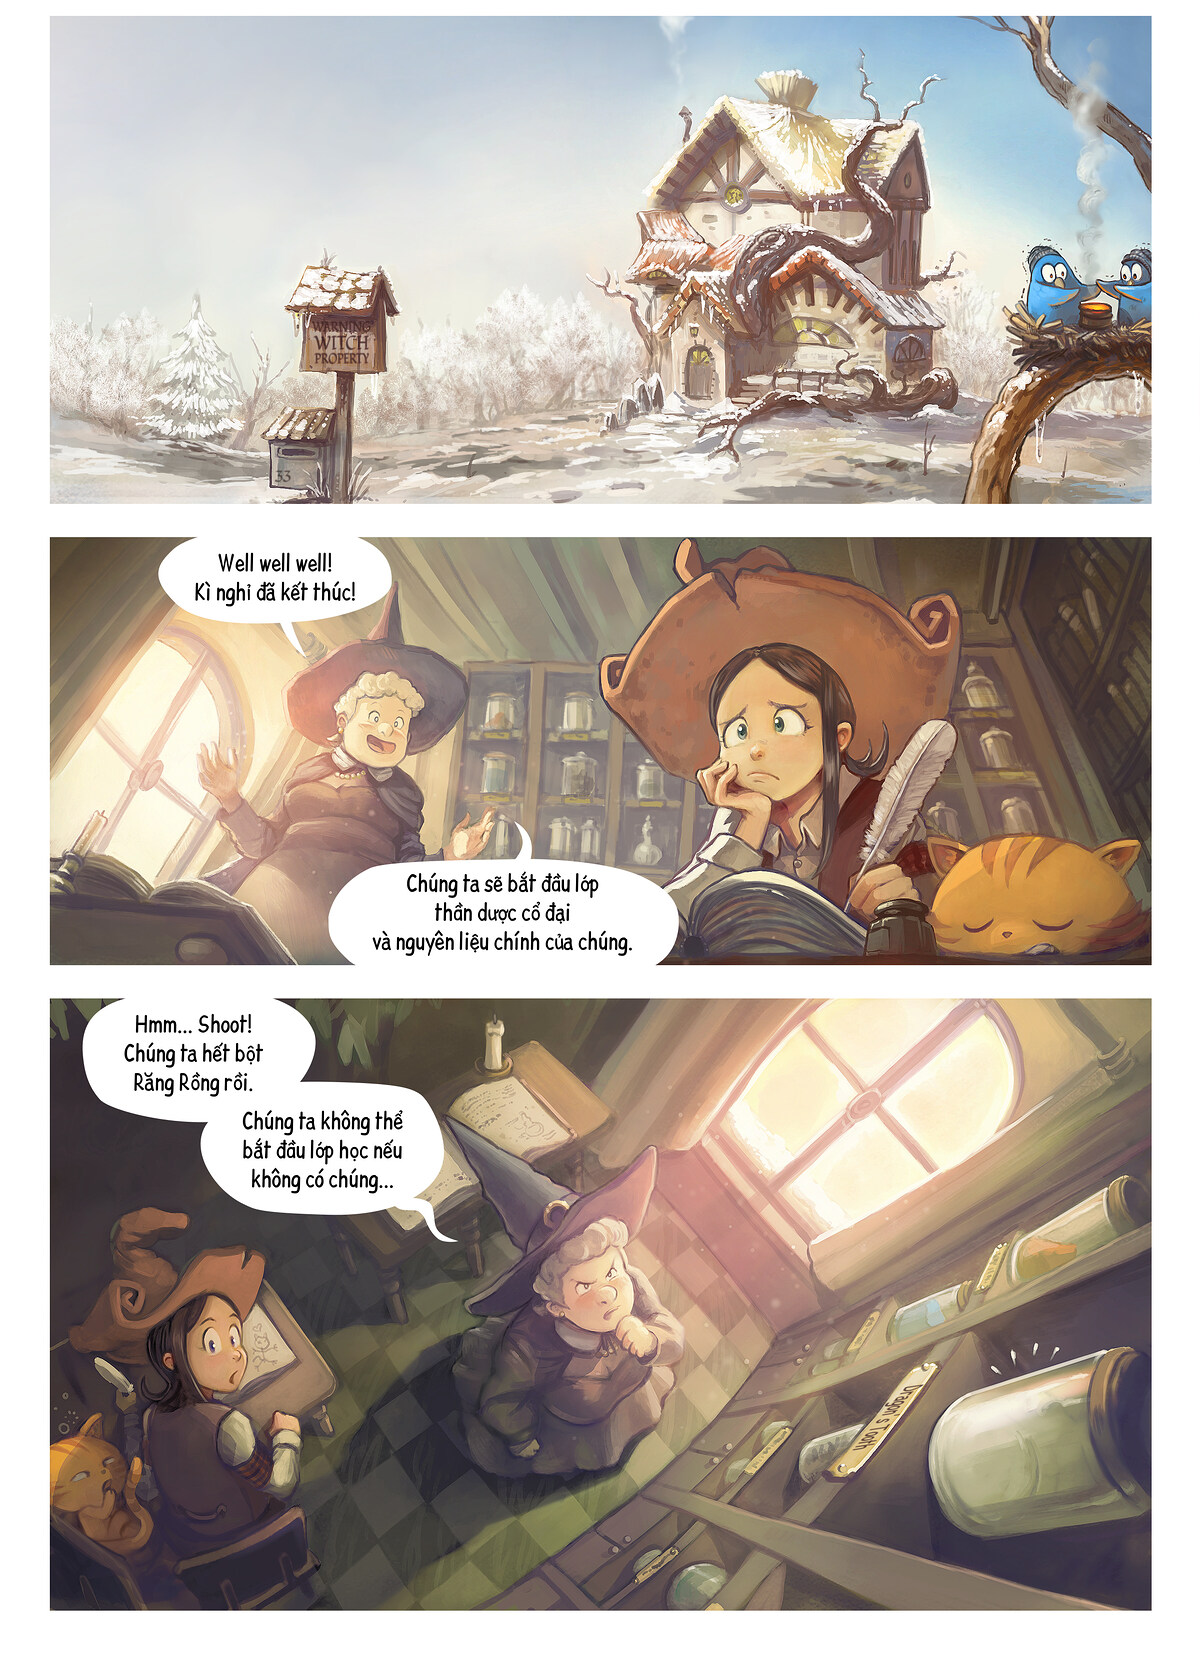 A webcomic page of Pepper&Carrot, Tập 14 [vi], trang 1